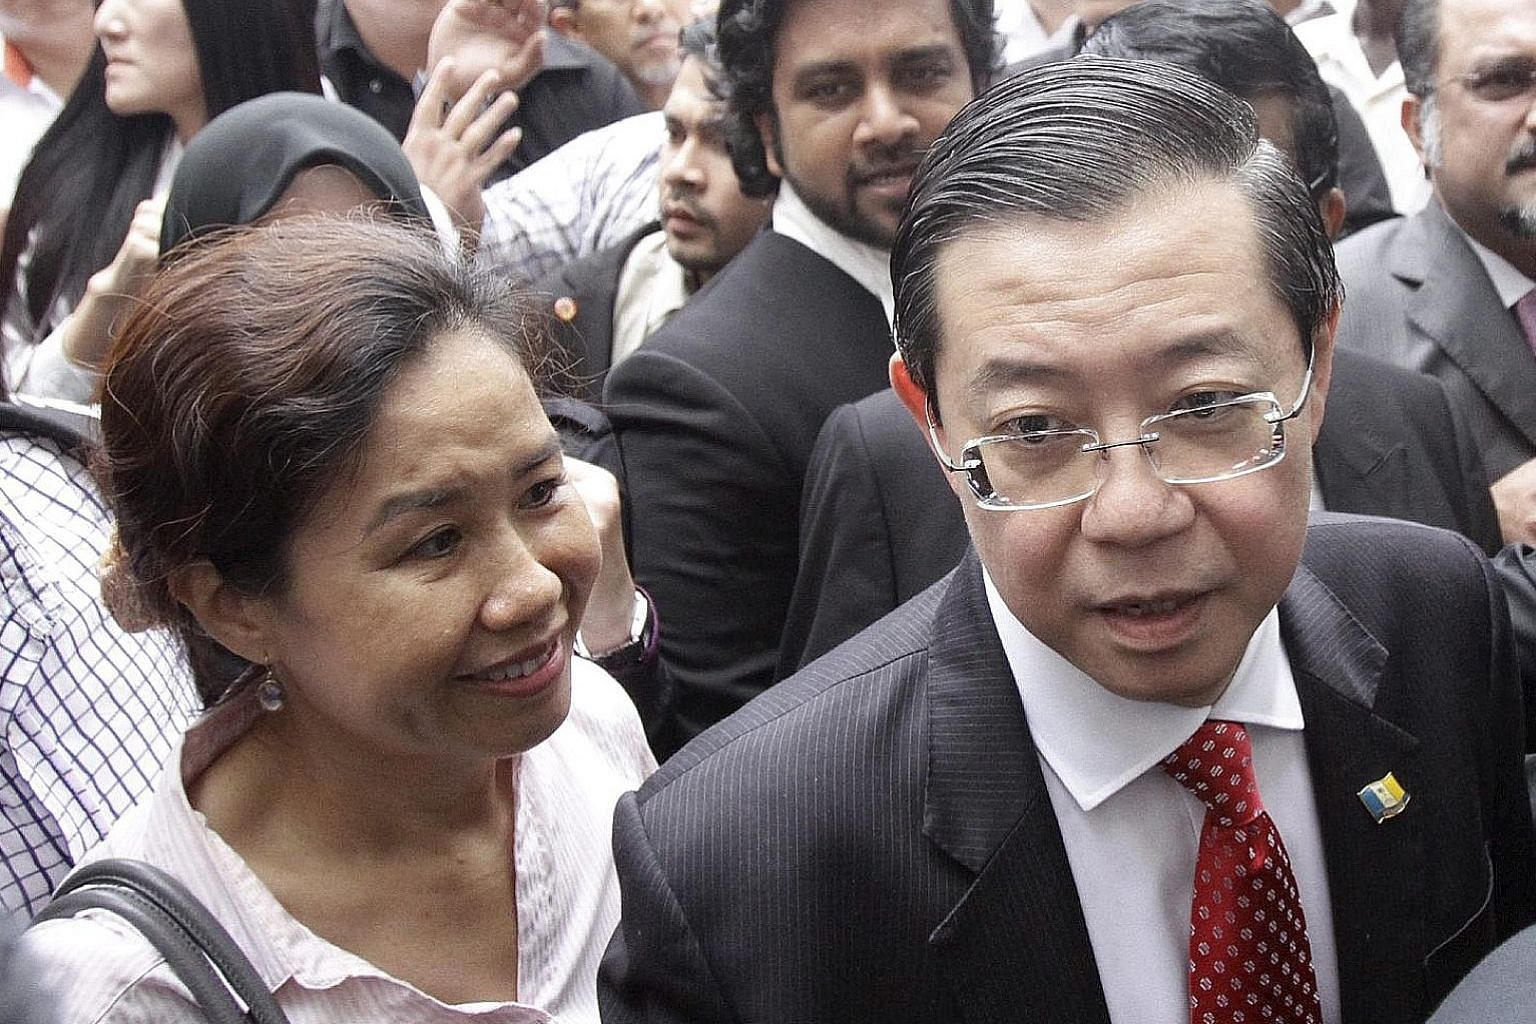 Democratic Action Party secretary- general Lim Guan Eng and his wife, Madam Betty Chew. Today, Mr Lim leads Malaysia's largest opposition party, including many who are fanatically loyal to him despite recent setbacks.